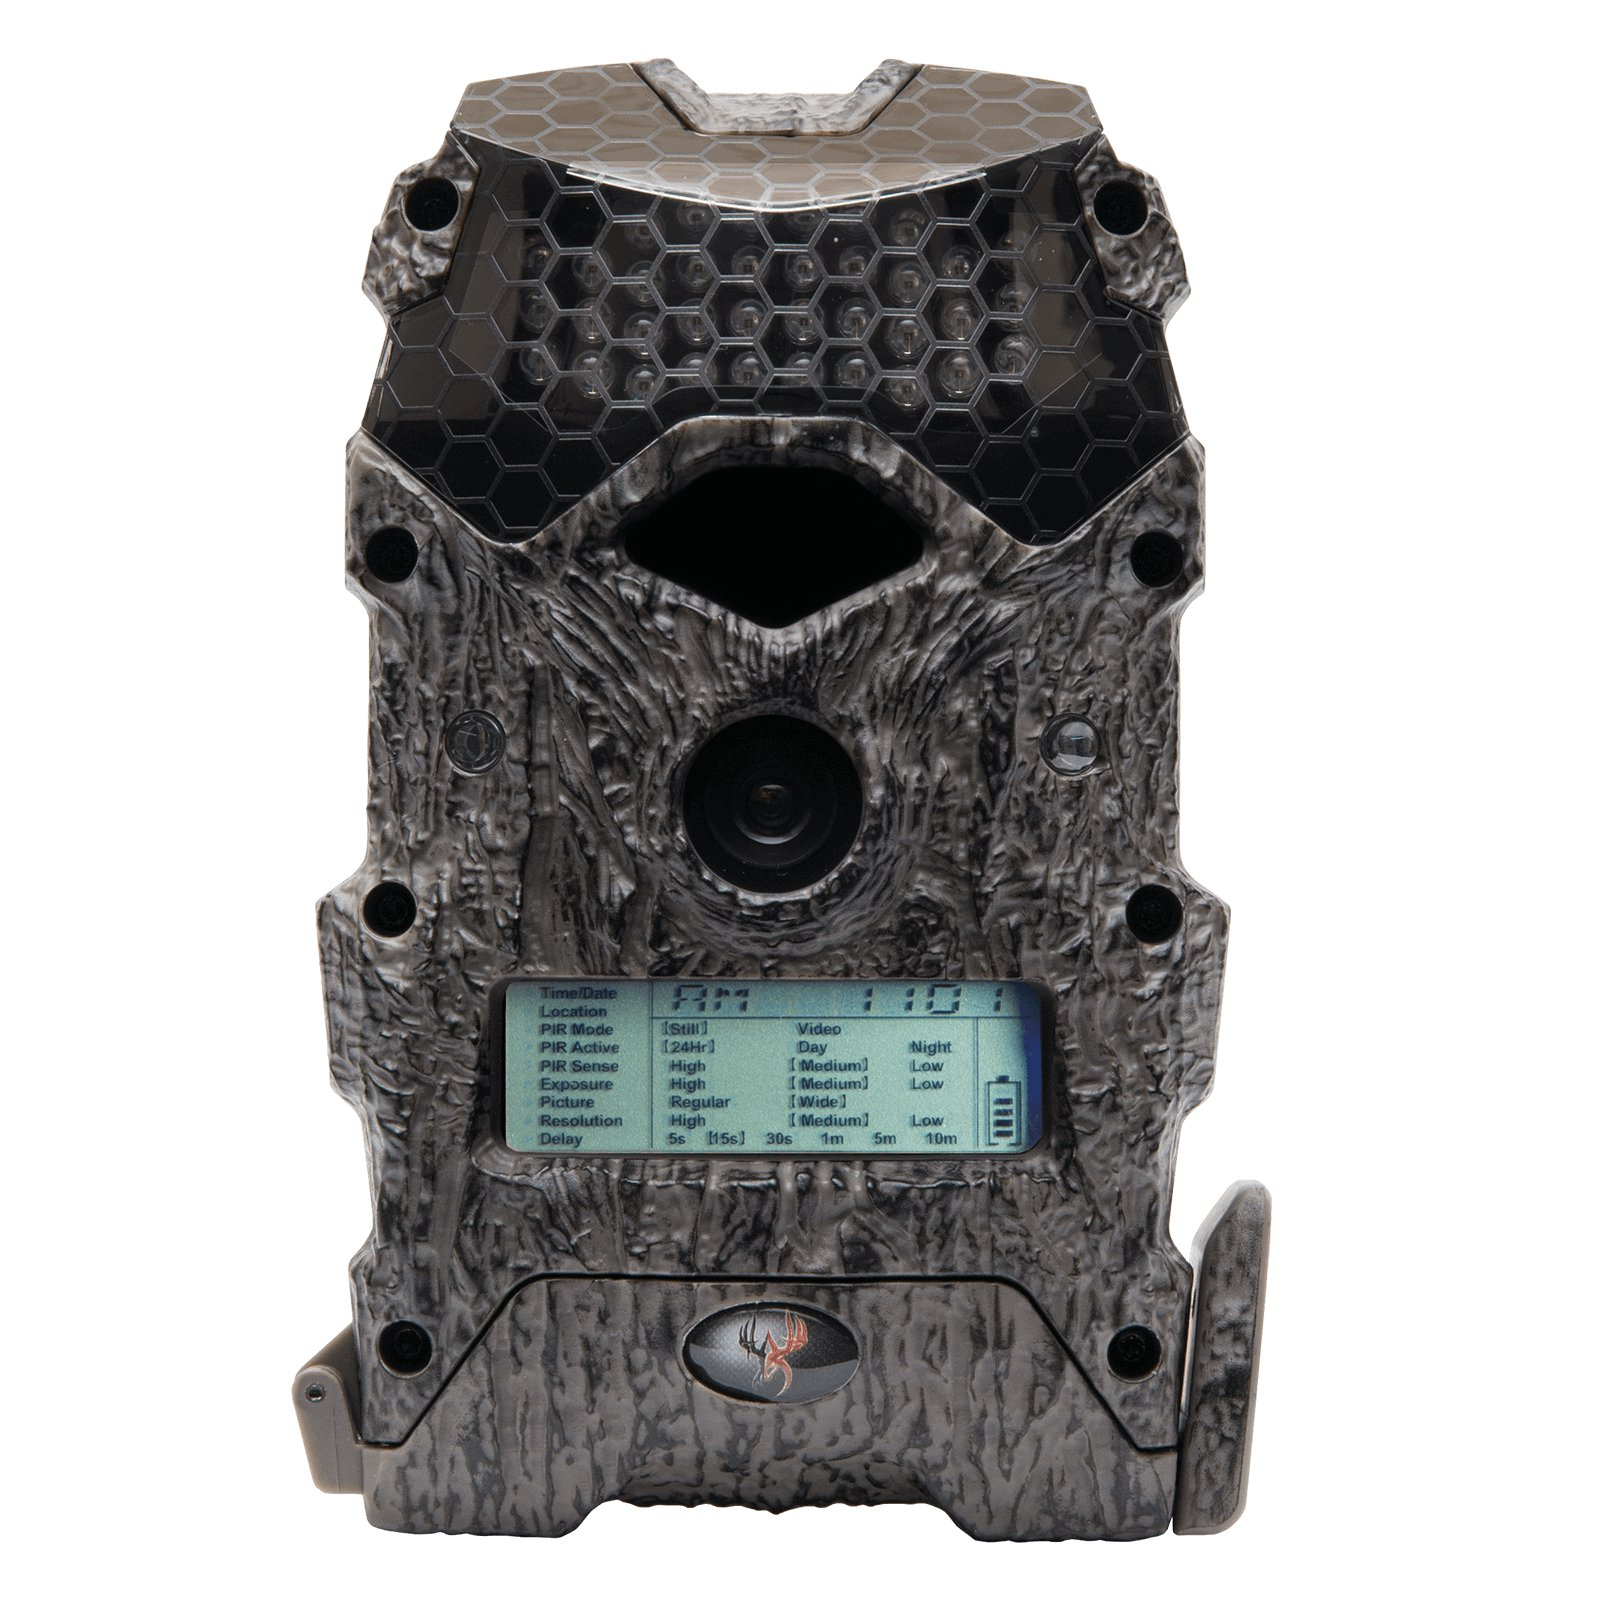 Wildgame Innovations Mirage 16 16MP 720p Video Hunting Game Trail Camera, Camo - image 5 of 5